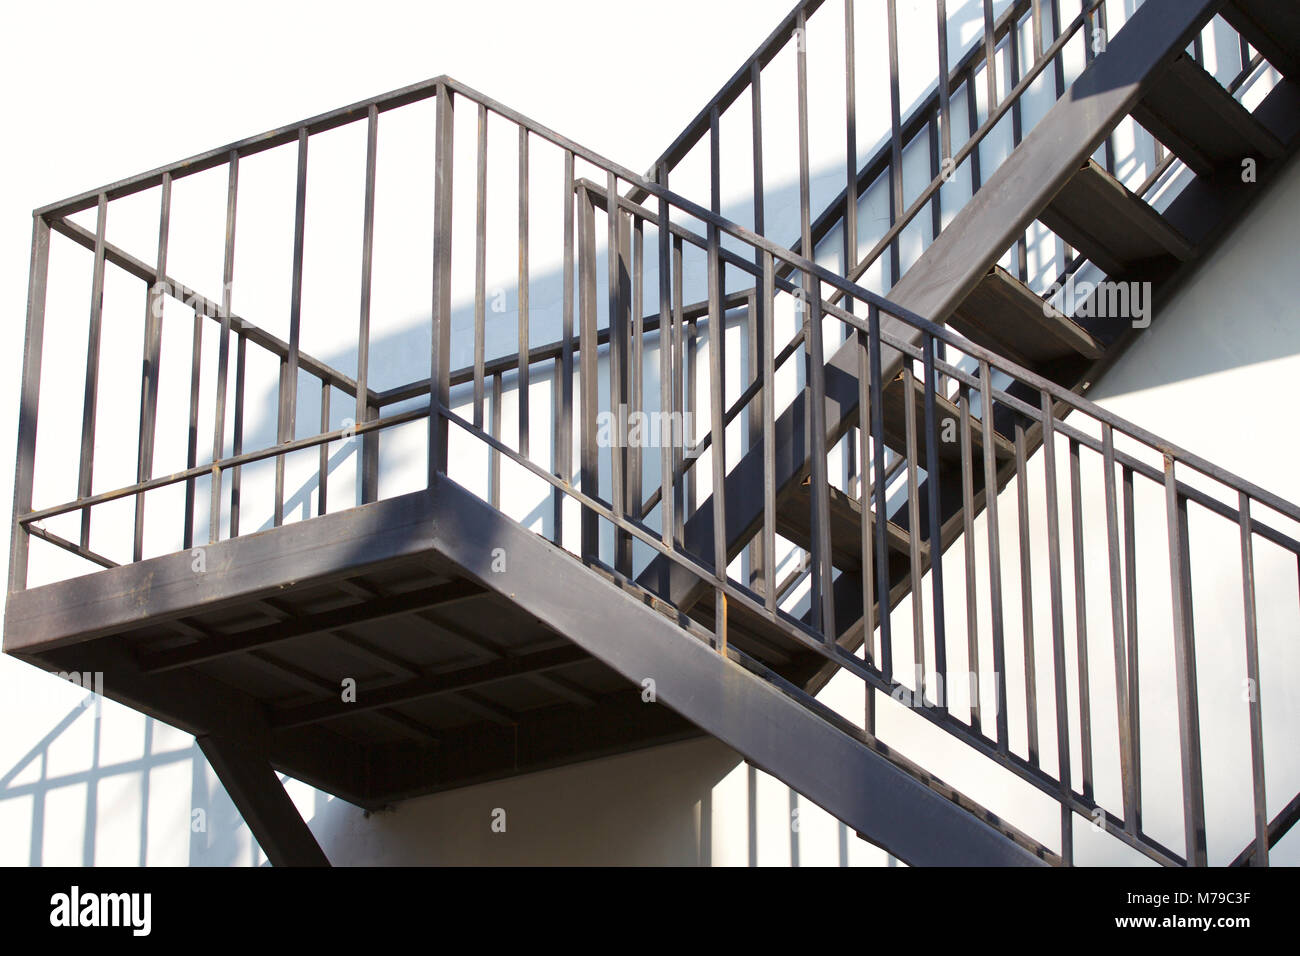 Incroyable Metal Structure Of A Metal Staircase Outside A Multistory Building